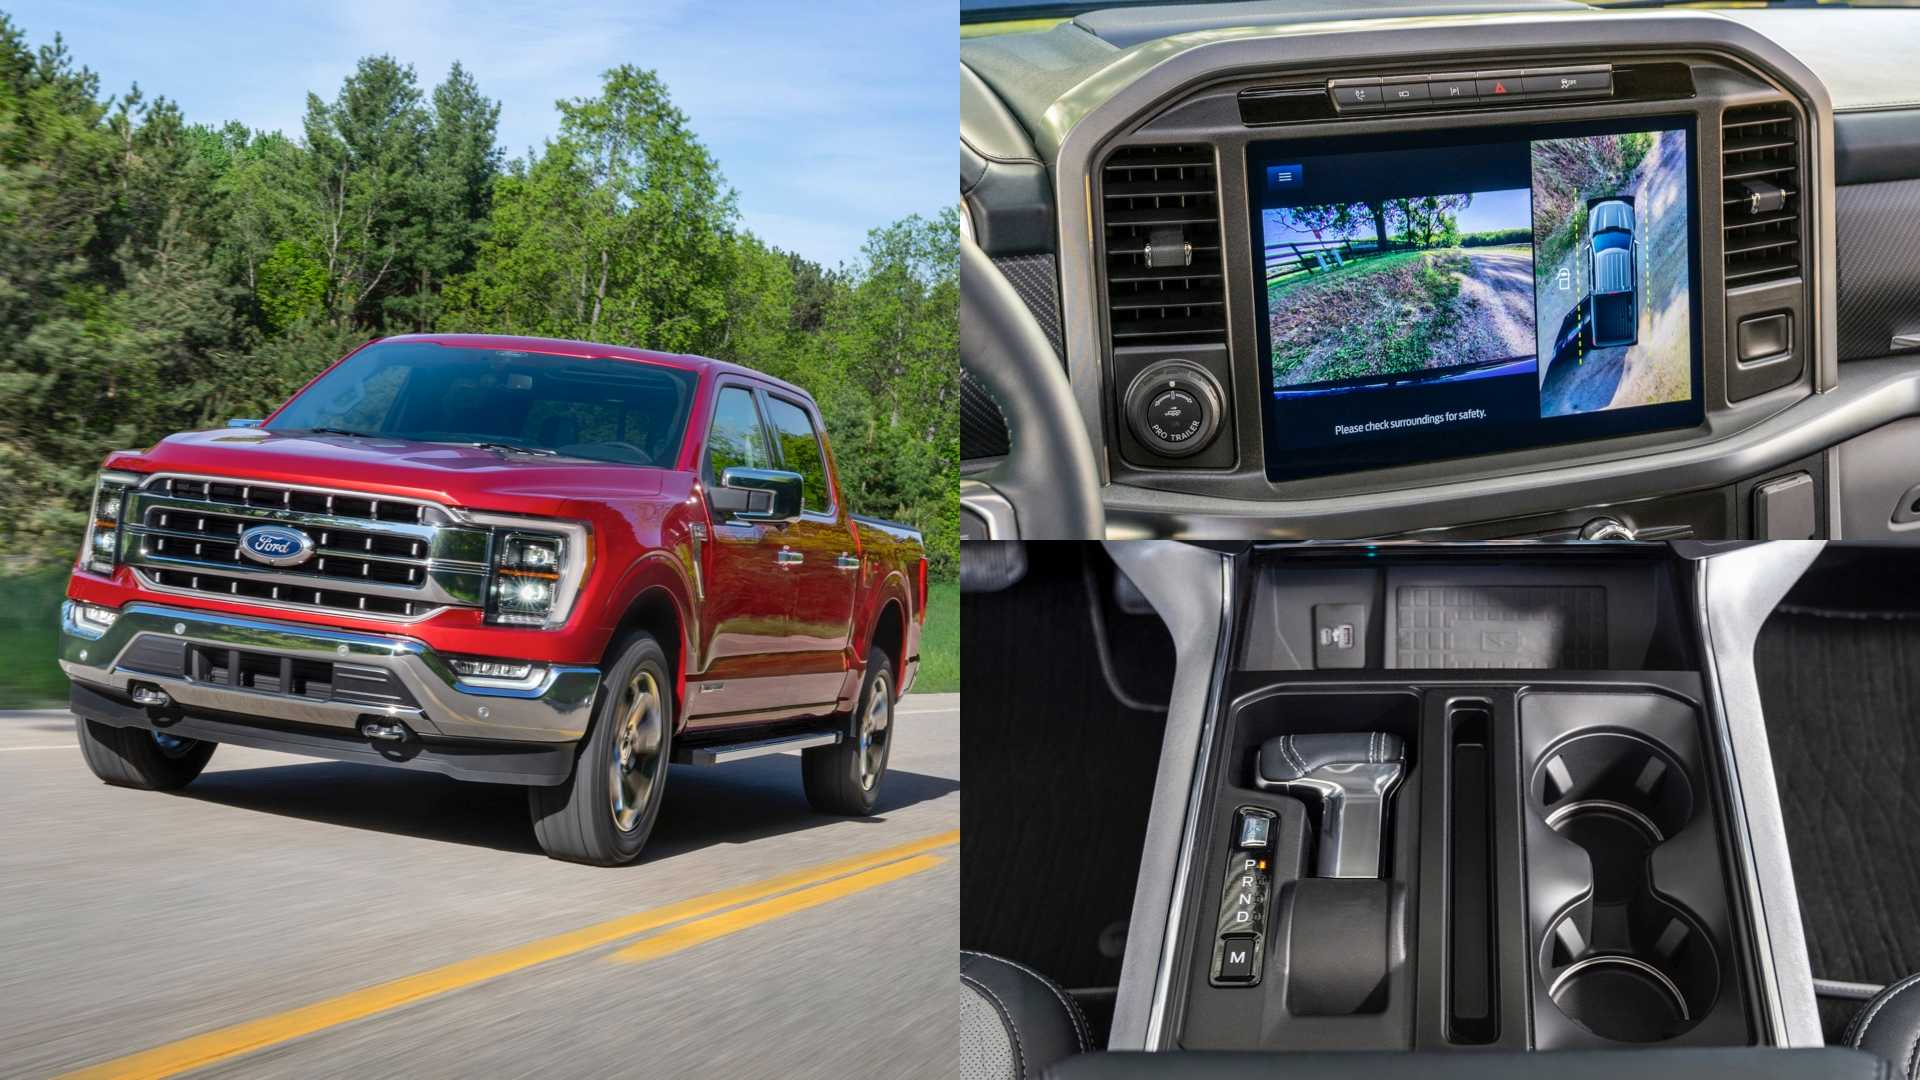 2021 Ford F 150 Interior New Design Features And Tech 1920x1080